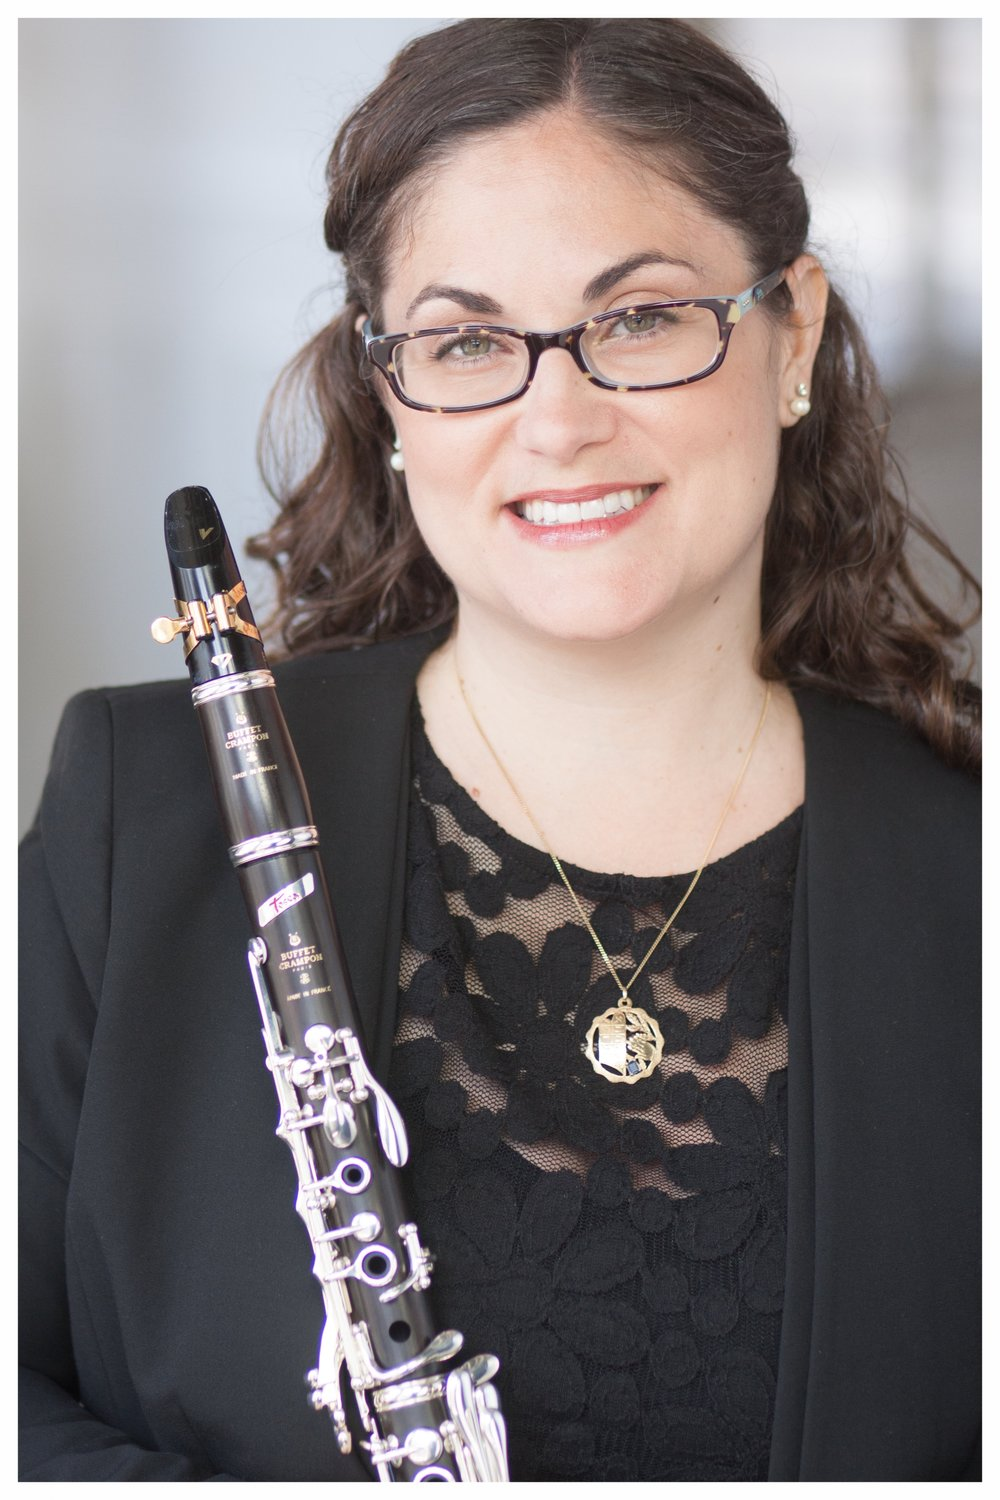 teaching - Throughout my professional career, I have developed a well-rounded curriculum for the aspiring clarinetist that is based on a combination of current best practices and my own experience as a musician. By focusing on the needs of each student with regard to tone production, embouchure, breathing, posture, tonguing, rhythm, sight reading, and performance anxiety, I have been able to help them dramatically improve their technique.I have found that students usually fall into three categories: students that learn best through critical listening and observation of modeled technique, students that learn best through verbal explanation and discussion of concepts and technique, and students that learn through a combination of modeled technique and verbal explanations. My teaching method meets each student at their current level and responds to their diverse learning styles and professional goals. Students are motivated through a combined acquisition of knowledge and achievement. Level appropriate assignments and expectations are given to students setting them up for success.I teach phrasing and musical expression through my combined knowledge of music theory, and music history. The concept of sound and the development of musical style is not only taught through effective modeling during lessons, but through frequent concert attendance and listening to professional recordings. Further, students are encouraged to perform contemporary and traditional music celebrating a wide variety of genres, diverse cultural backgrounds, and music composed by women and minorities.Like any other aspect of musical development, the growing musician must practice performing. My students benefit from my instruction, as well as interaction with their peers, as they are given the opportunity to perform in masterclasses and studio recitals.My students often refer to me as part clarinet teacher and part life coach as our discussions often relate what we are doing in lessons to what lies ahe